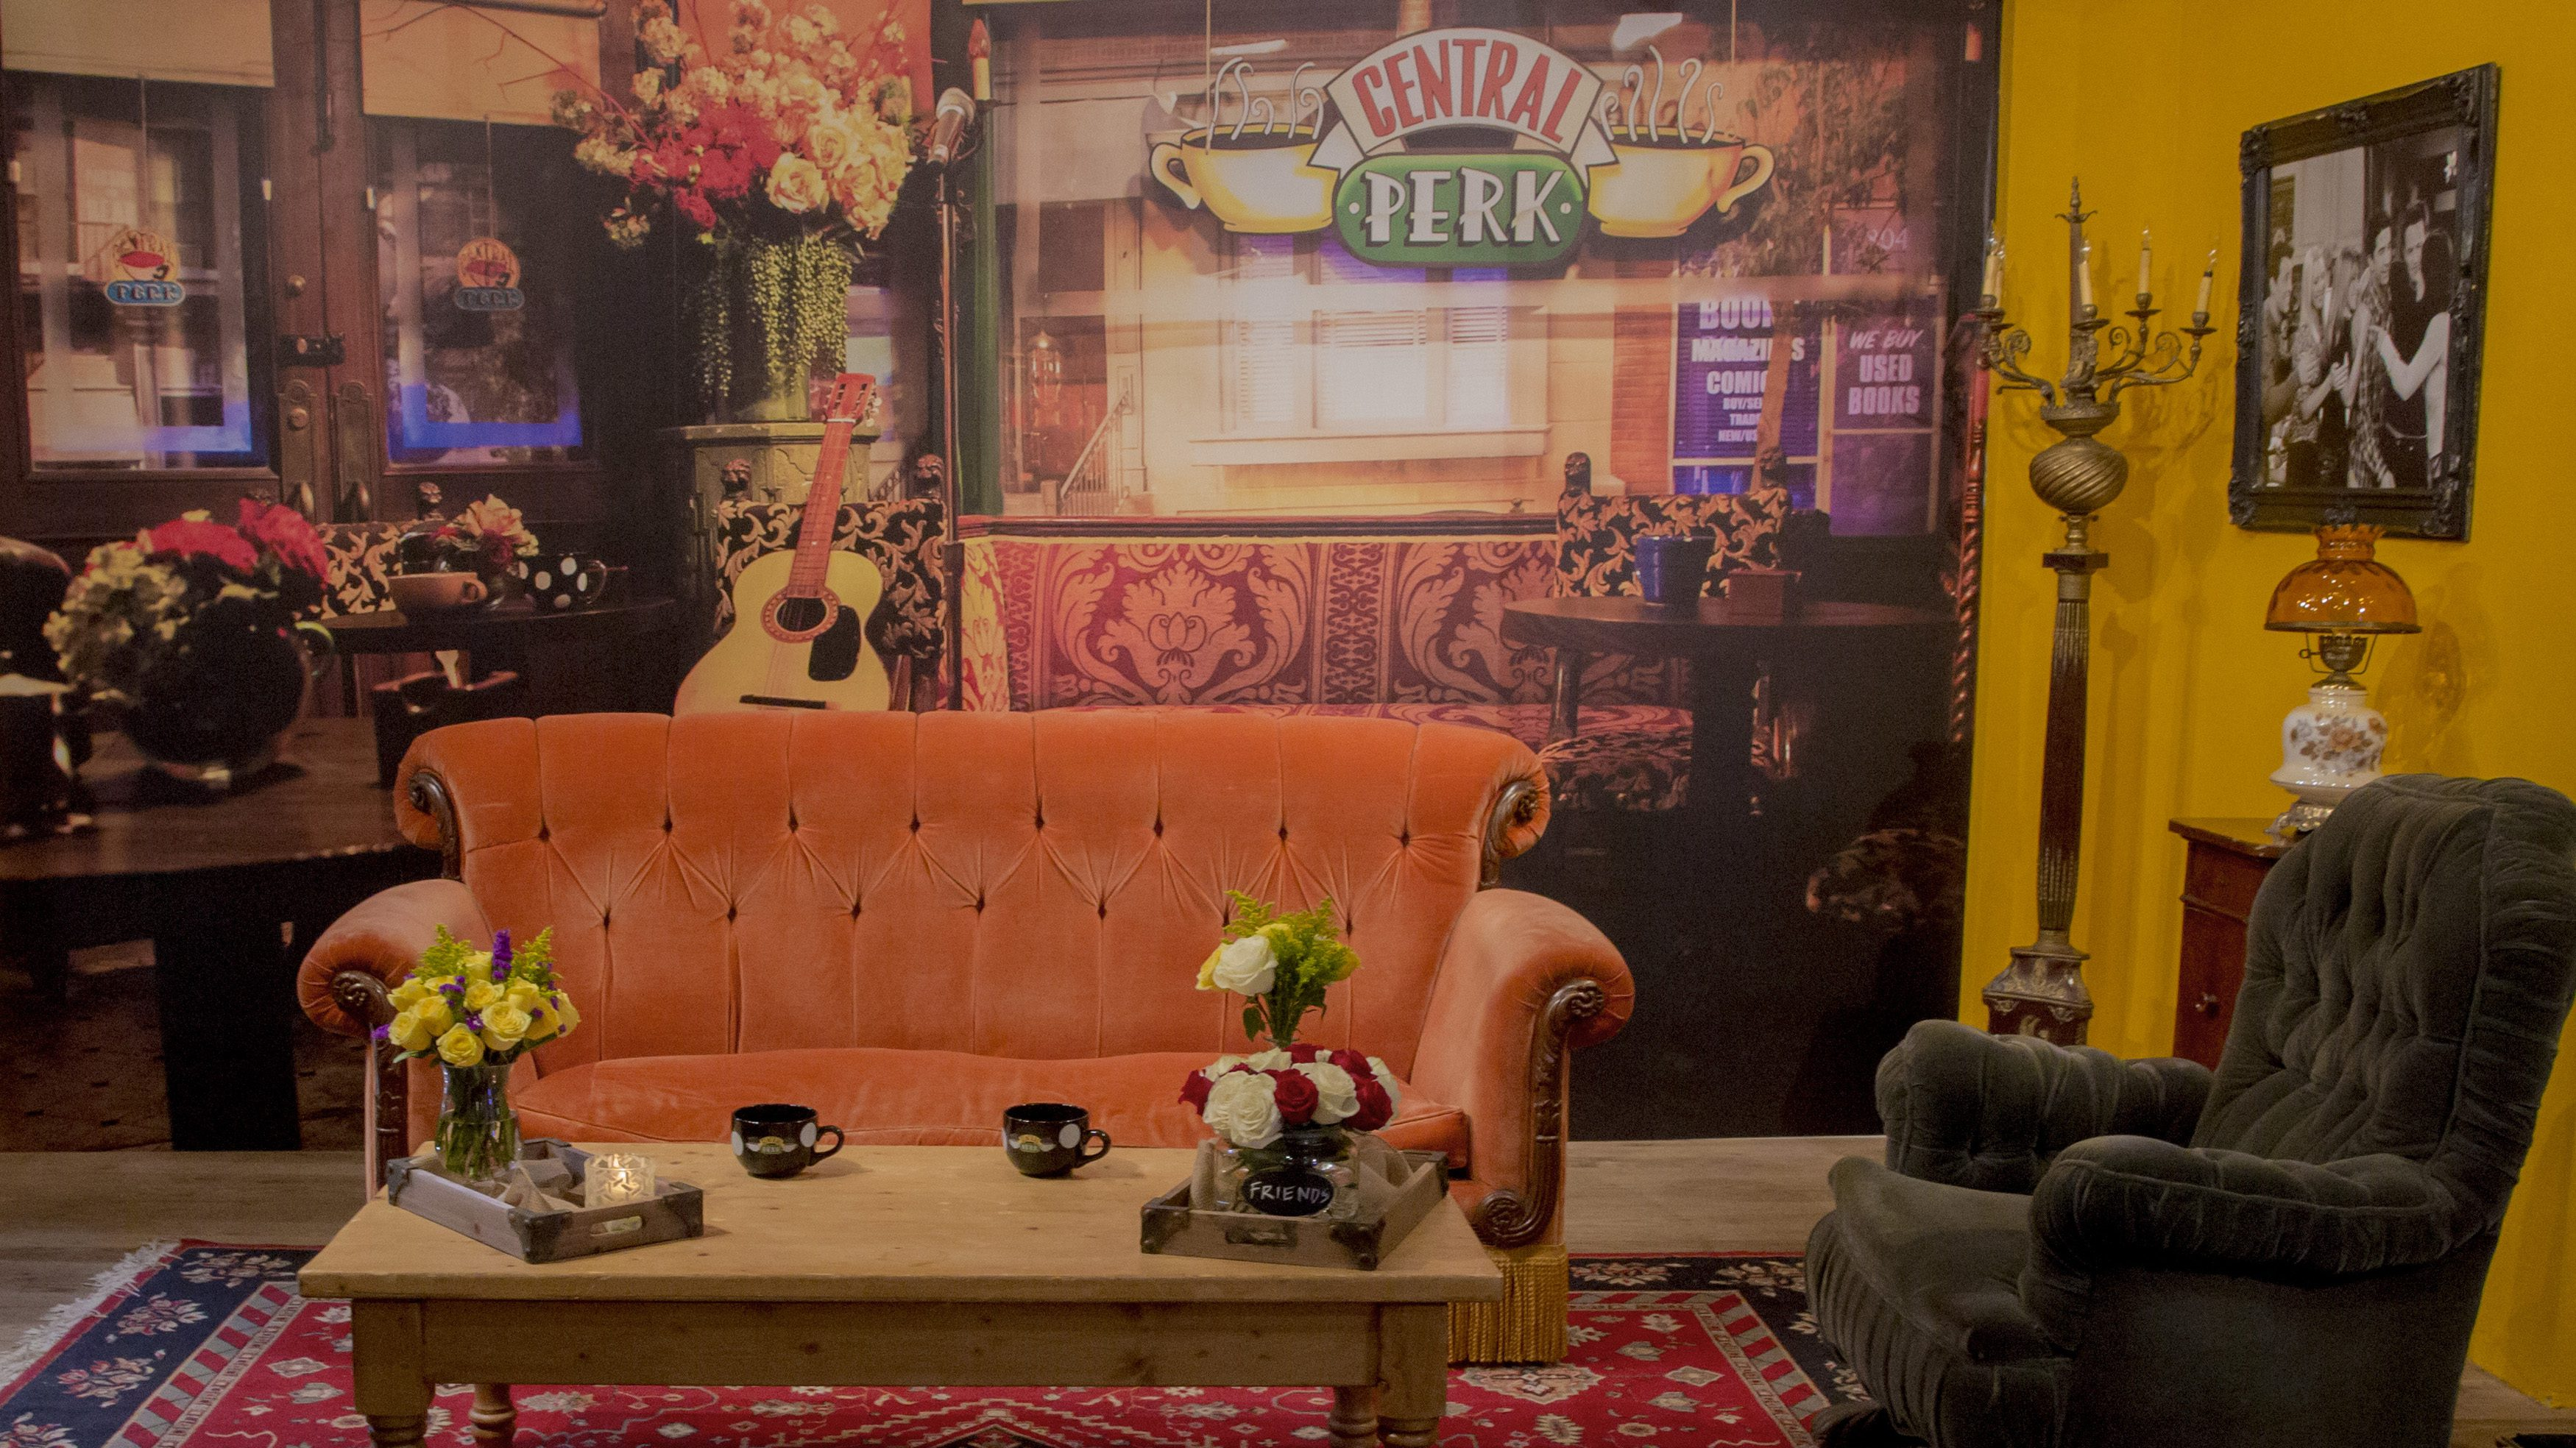 The iconic couch and other props from the fictitious Central Perk Coffee Shop used in the TV show 'Friends' are set up in a store-front in the SoHo section of New York